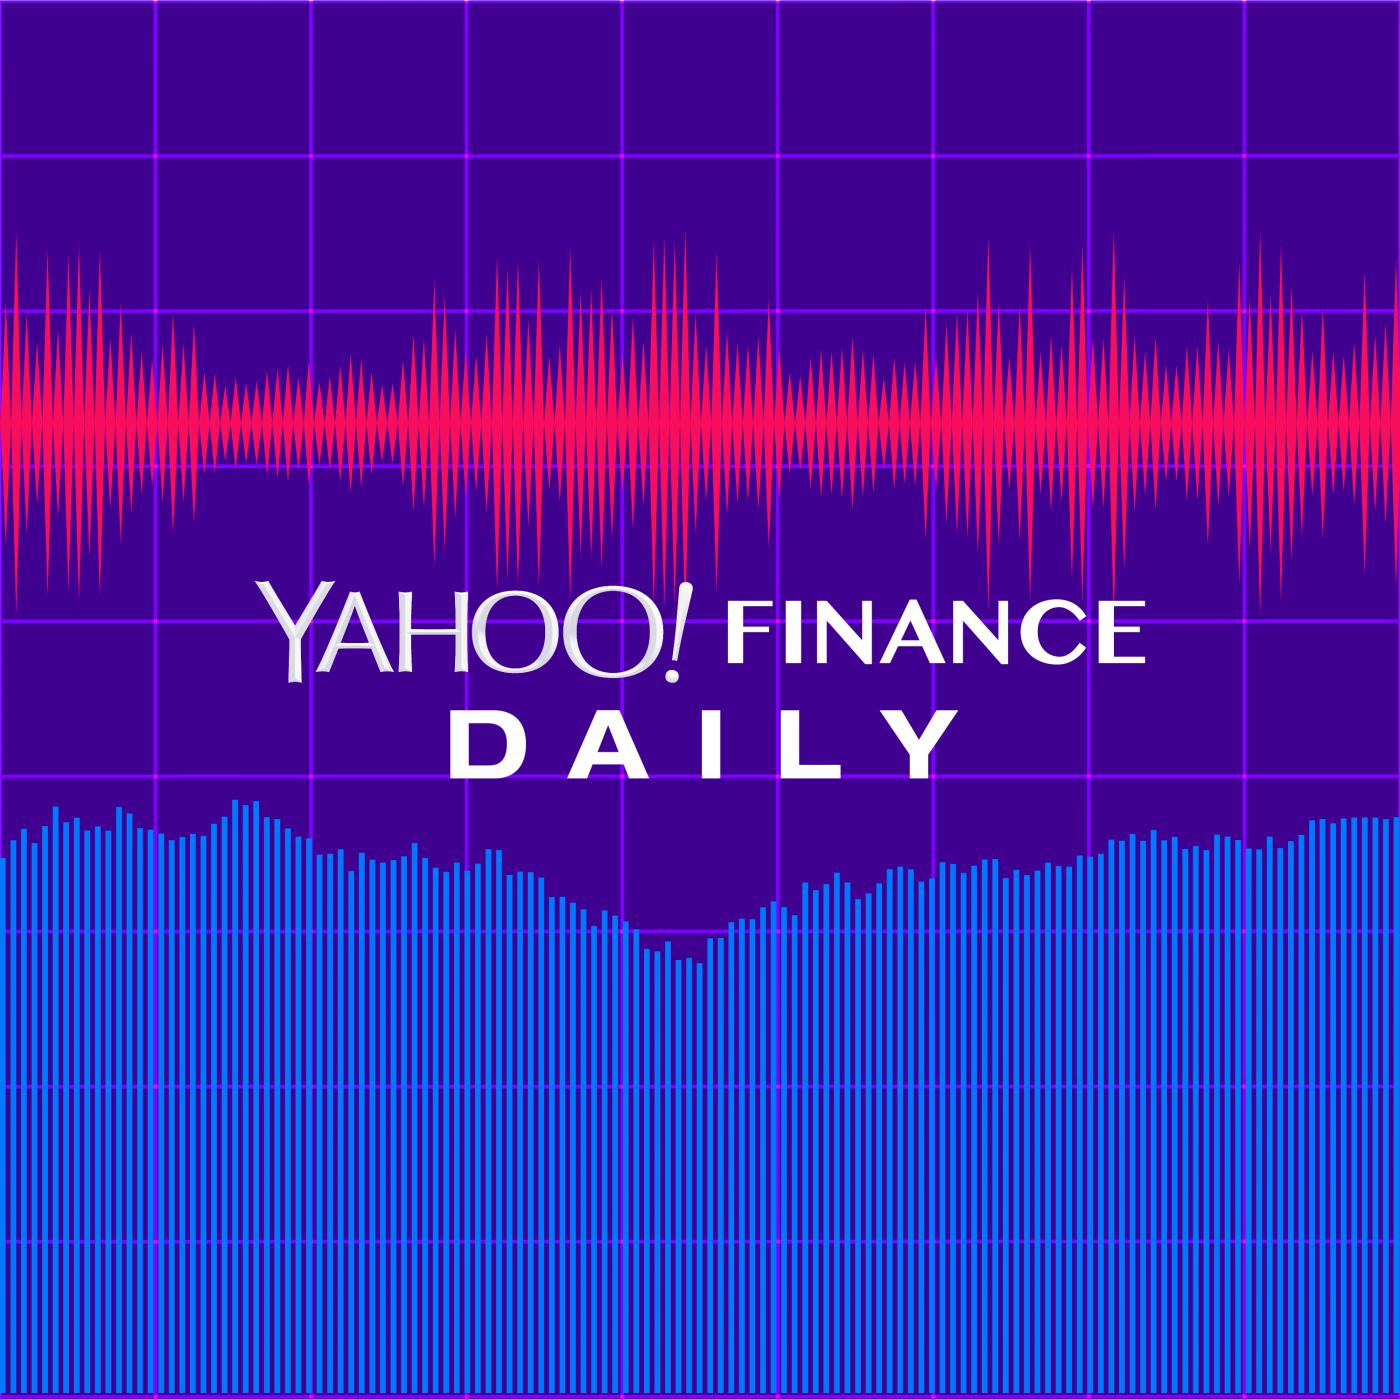 Yahoo Finance Daily (podcast) - Yahoo Finance | Listen Notes